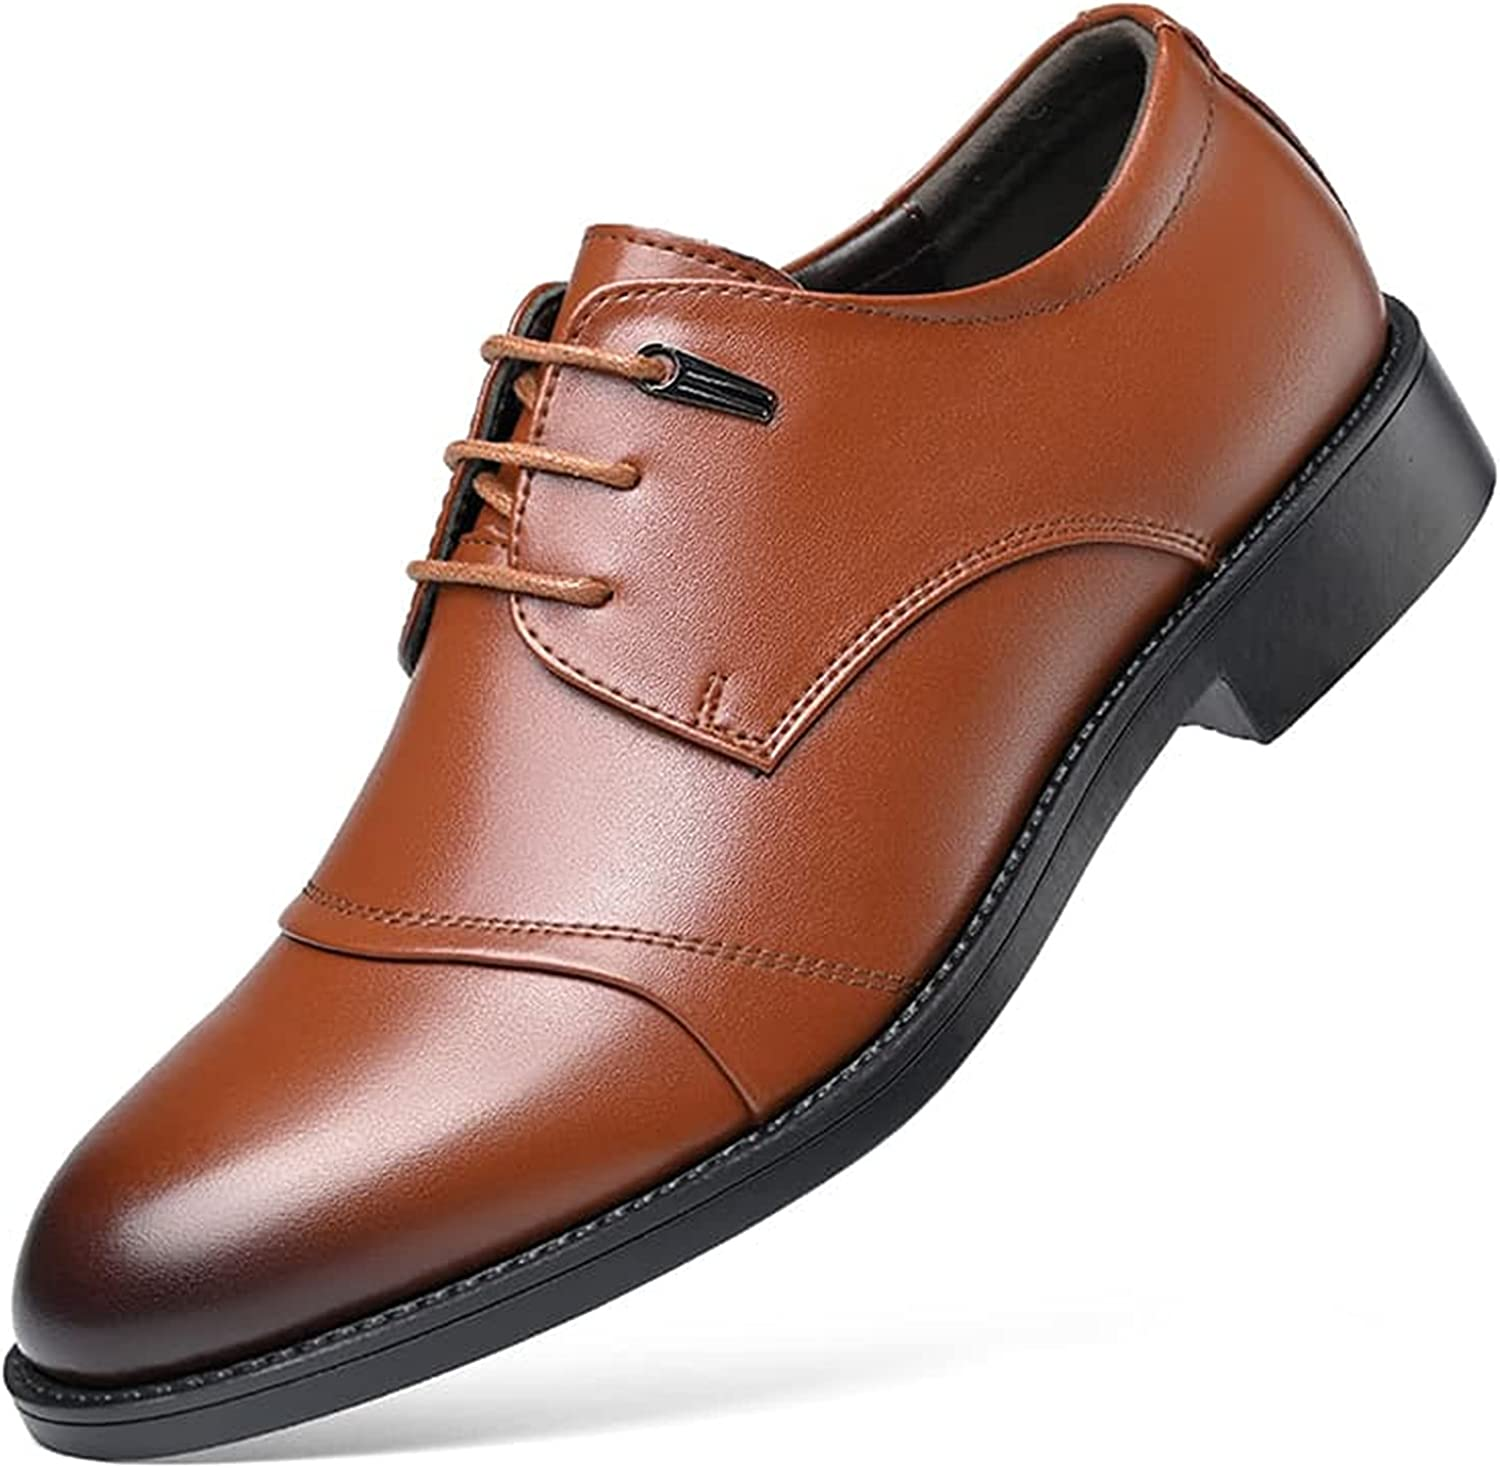 Leather 70% OFF Outlet Ranking TOP9 Shoes Oxford Dress Shoe Business T Classic Formal Casual